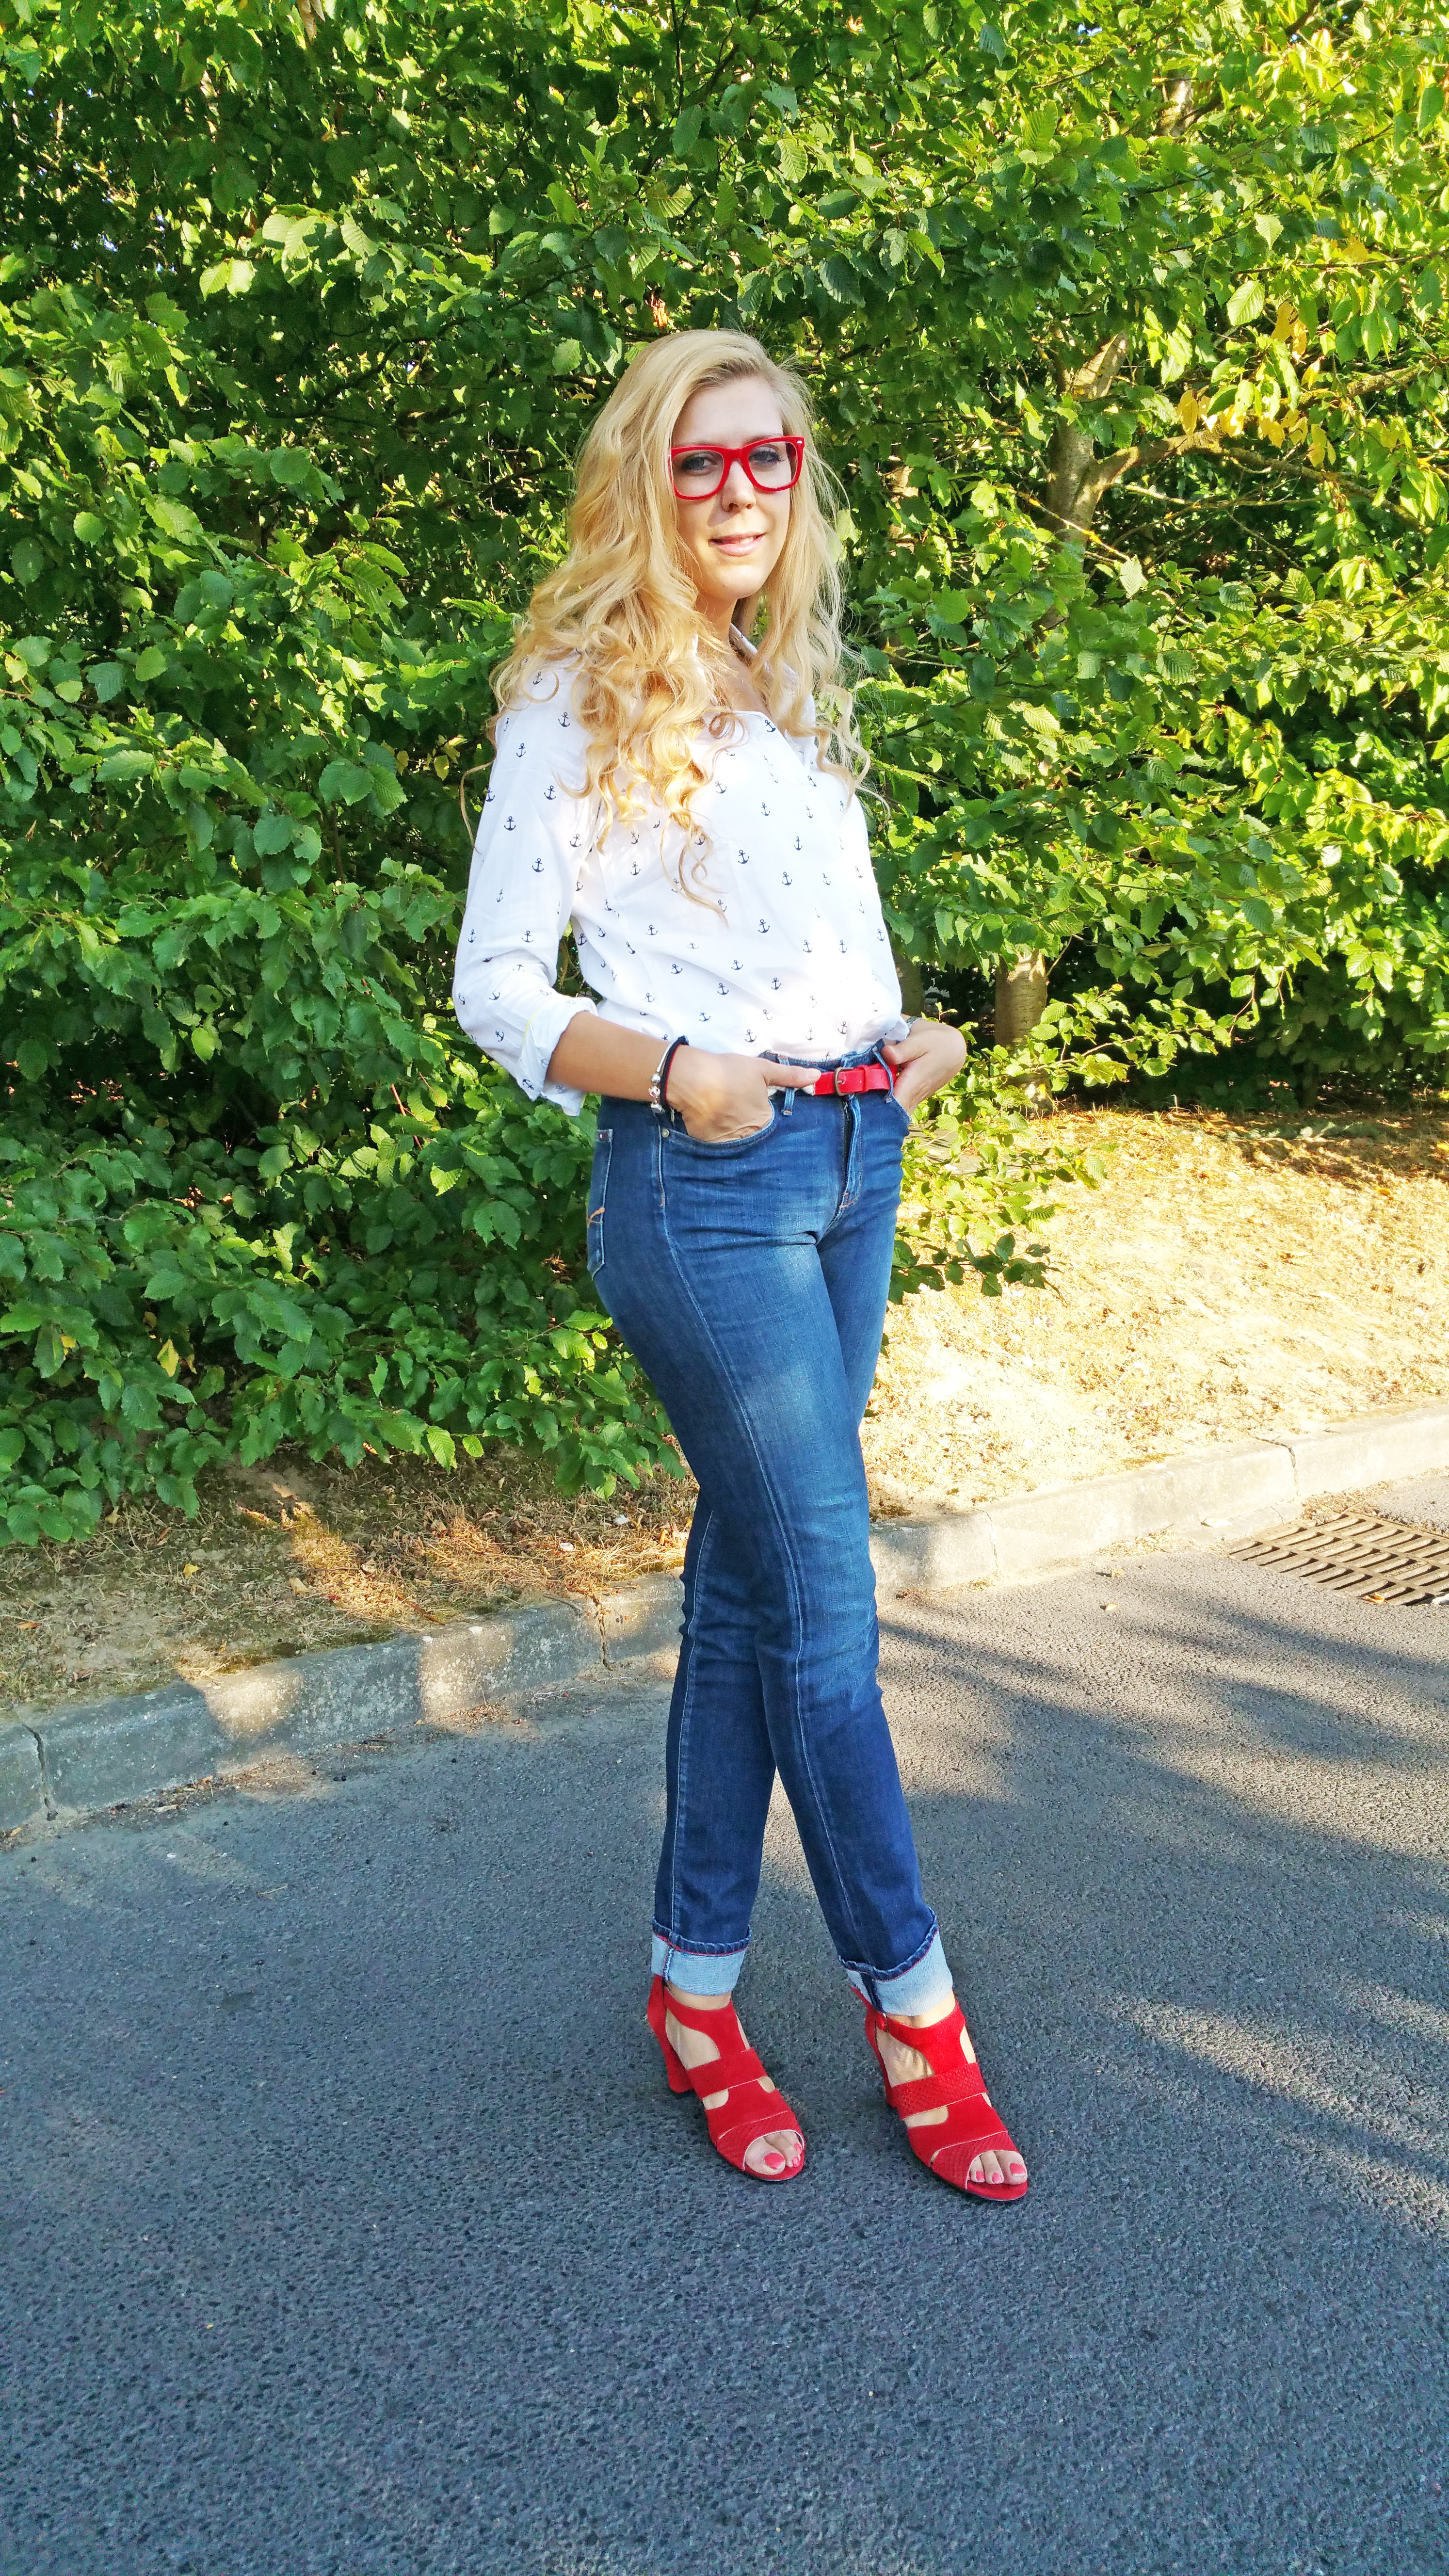 Jeans Tommy Rouge Sandale IsBsic